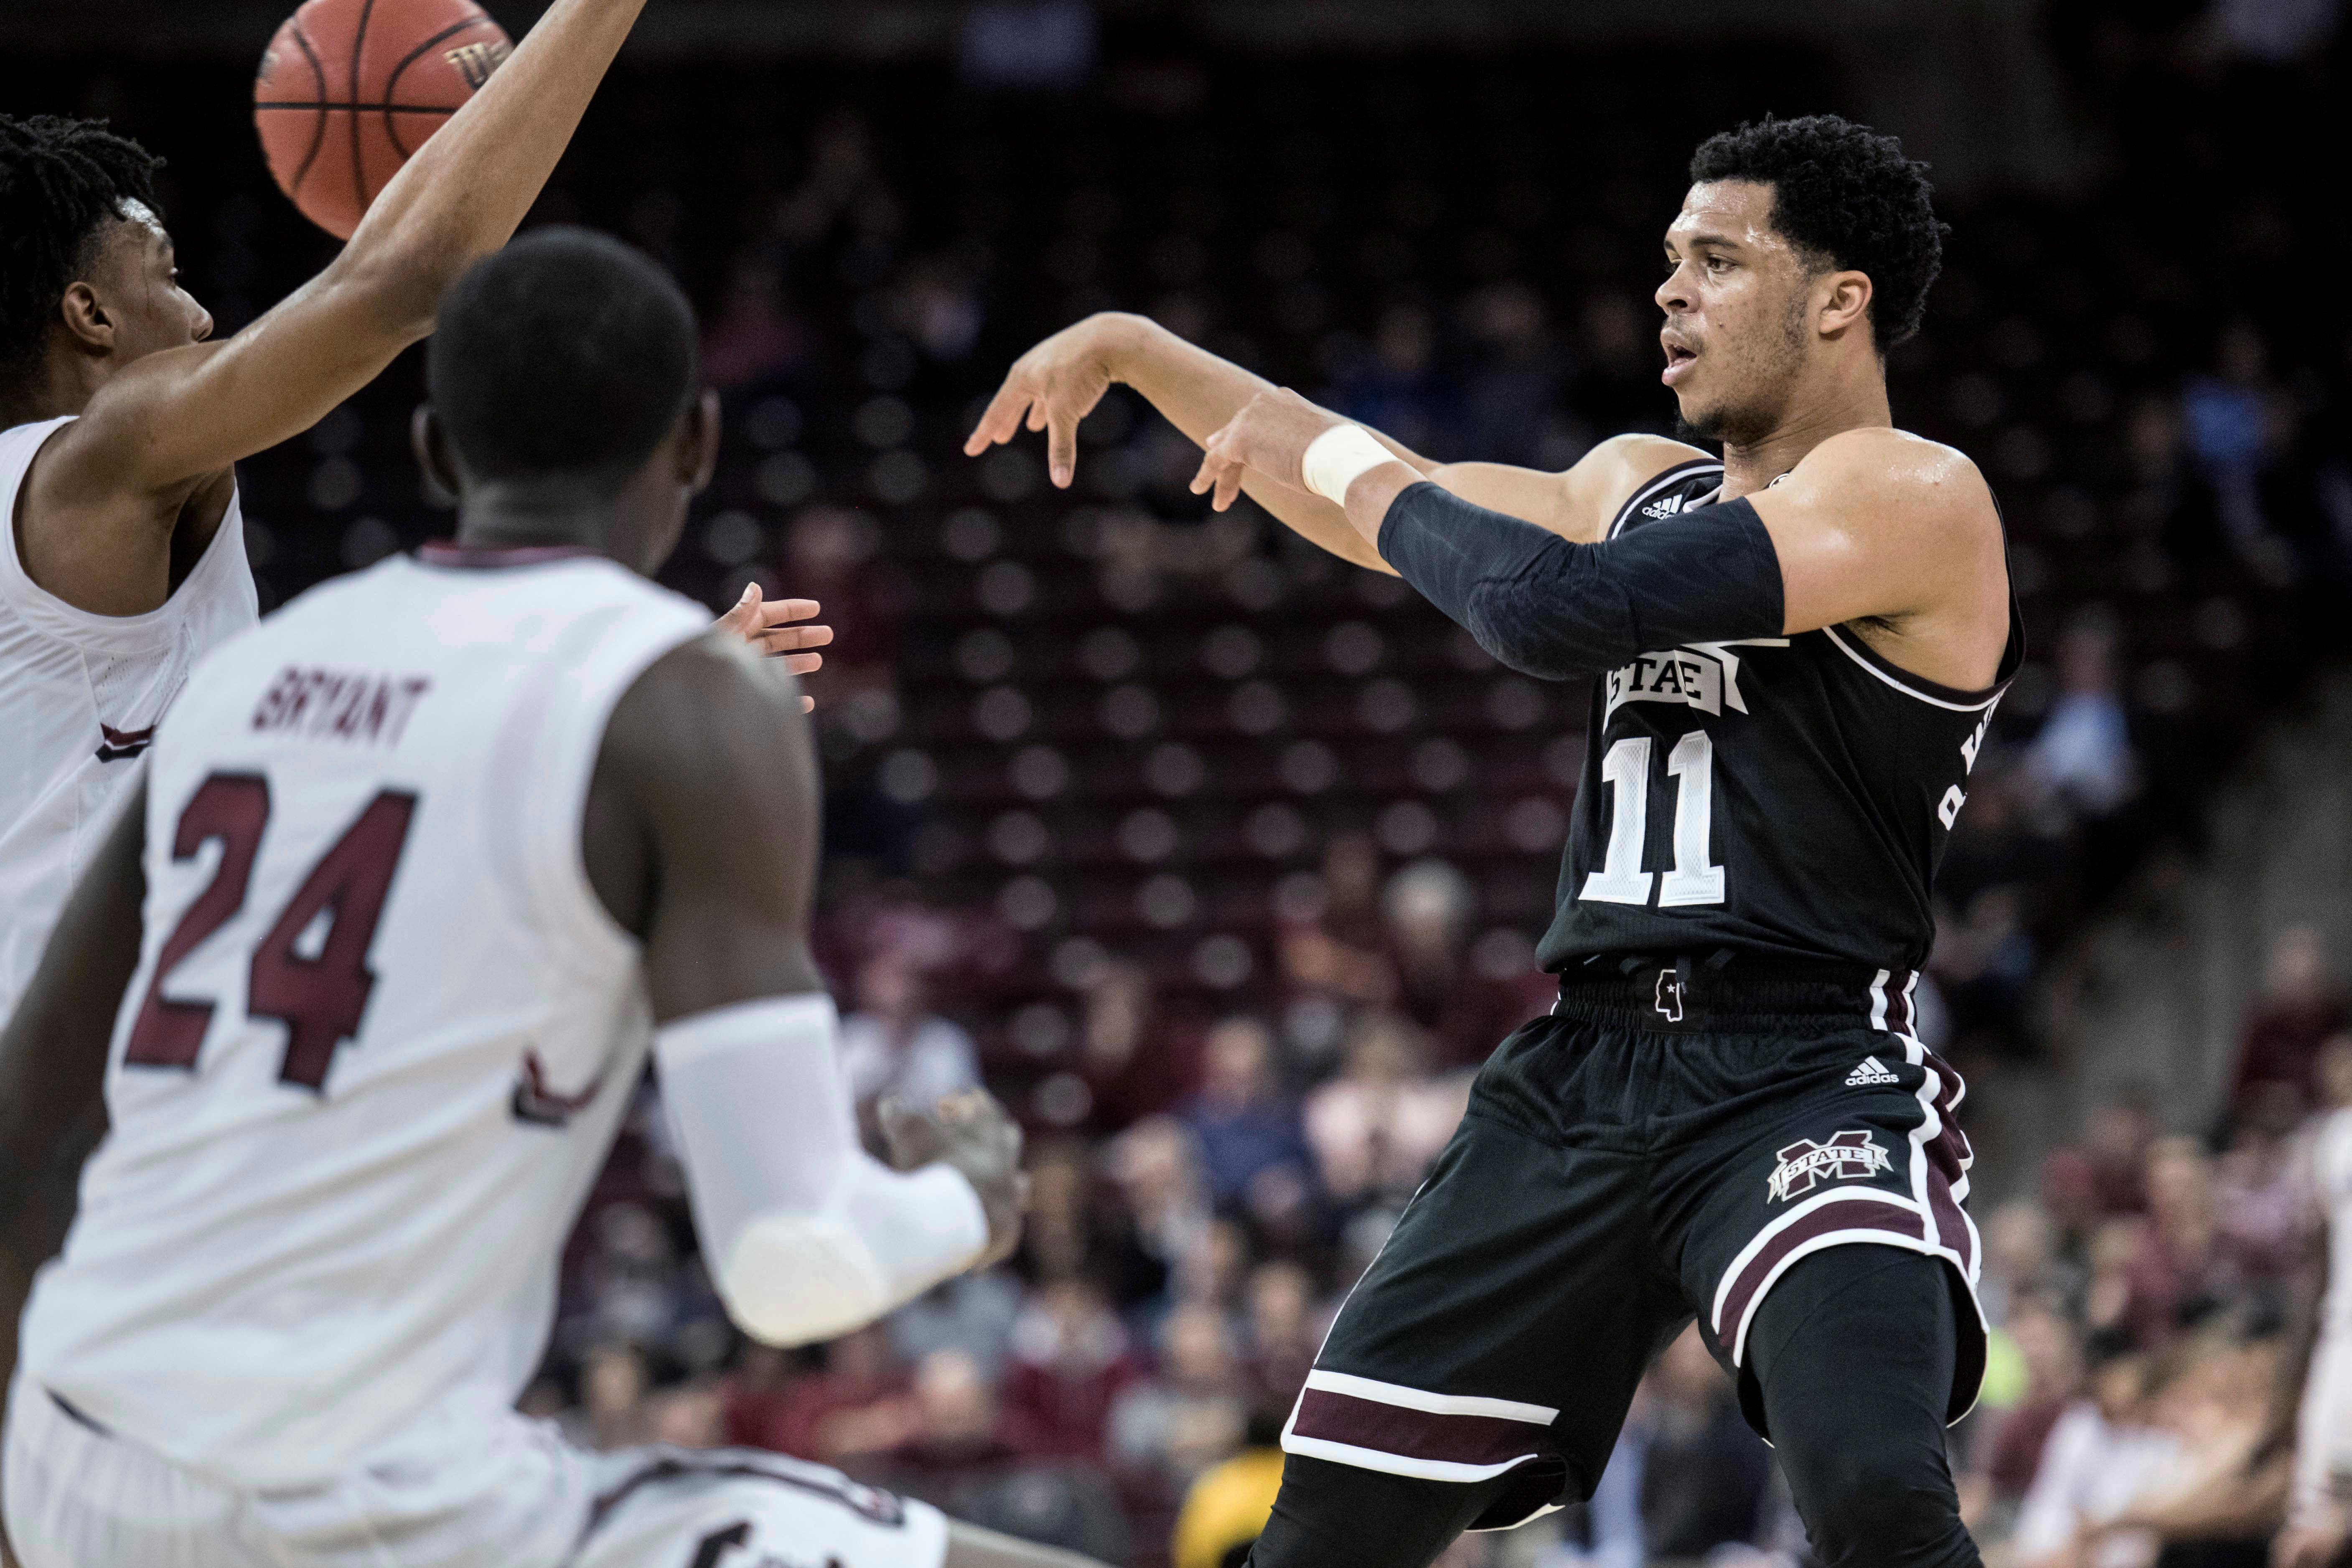 Mississippi State guard Quinndary Weatherspoon (11) passes the ball during the second half of the team's NCAA college basketball game against South Carolina on Tuesday, Jan. 8, 2019, in Columbia, S.C. South Carolina won 87-82. (AP Photo/Sean Rayford)